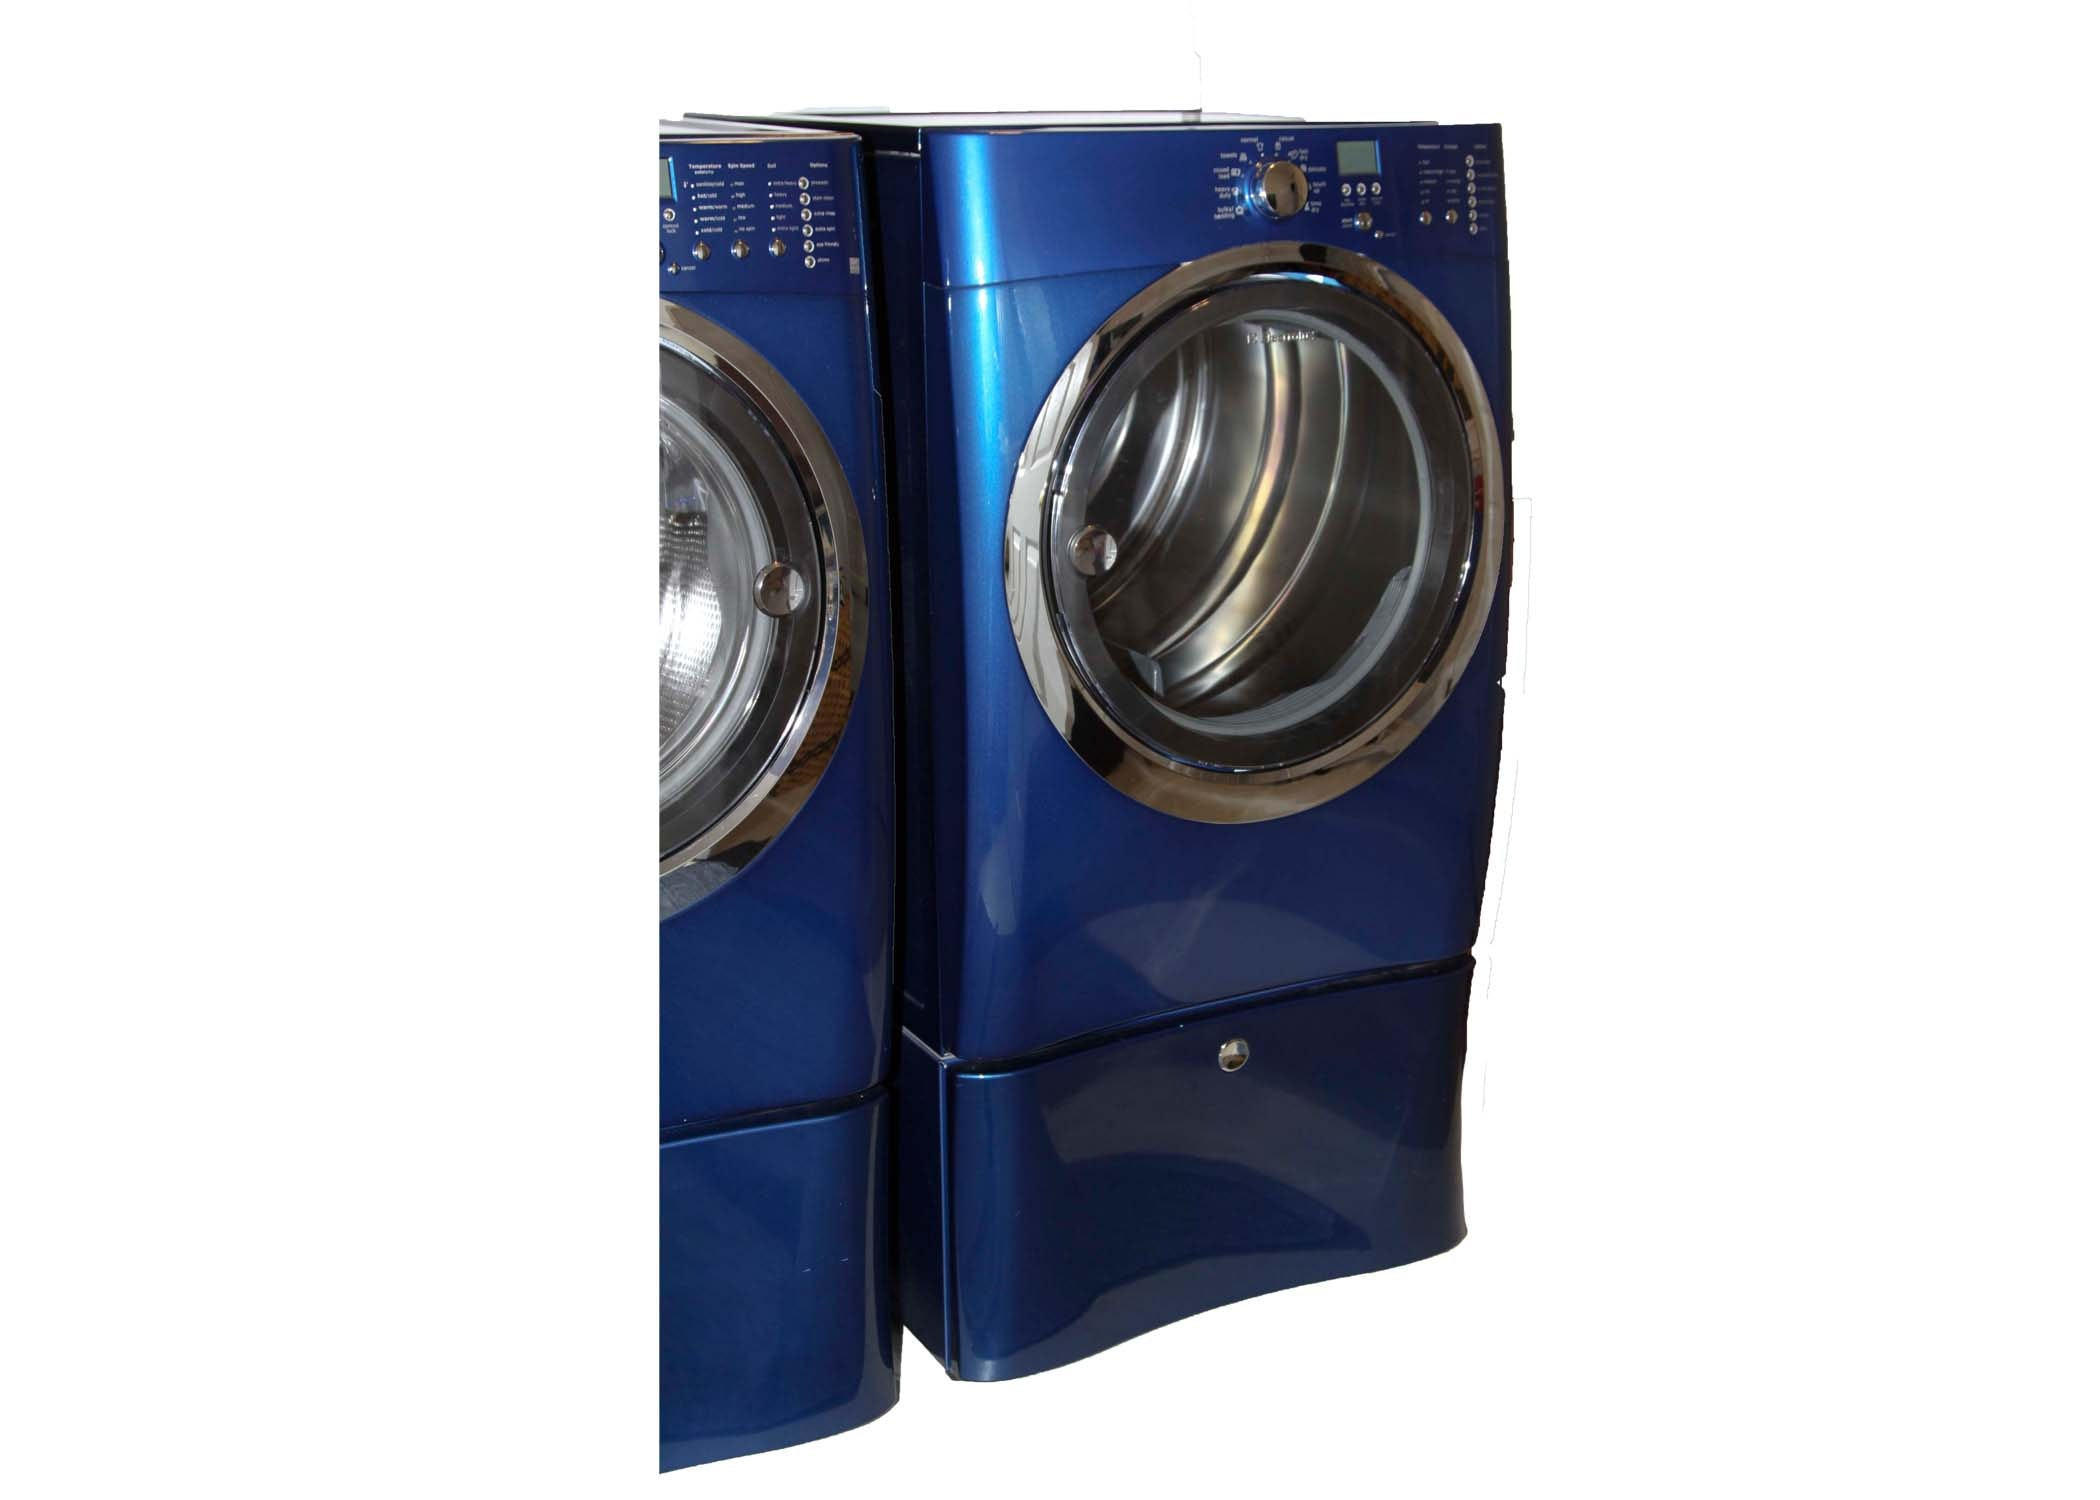 Electrolux washer and dryer washerdryer wd4130 electric Electrolux washer and dryer